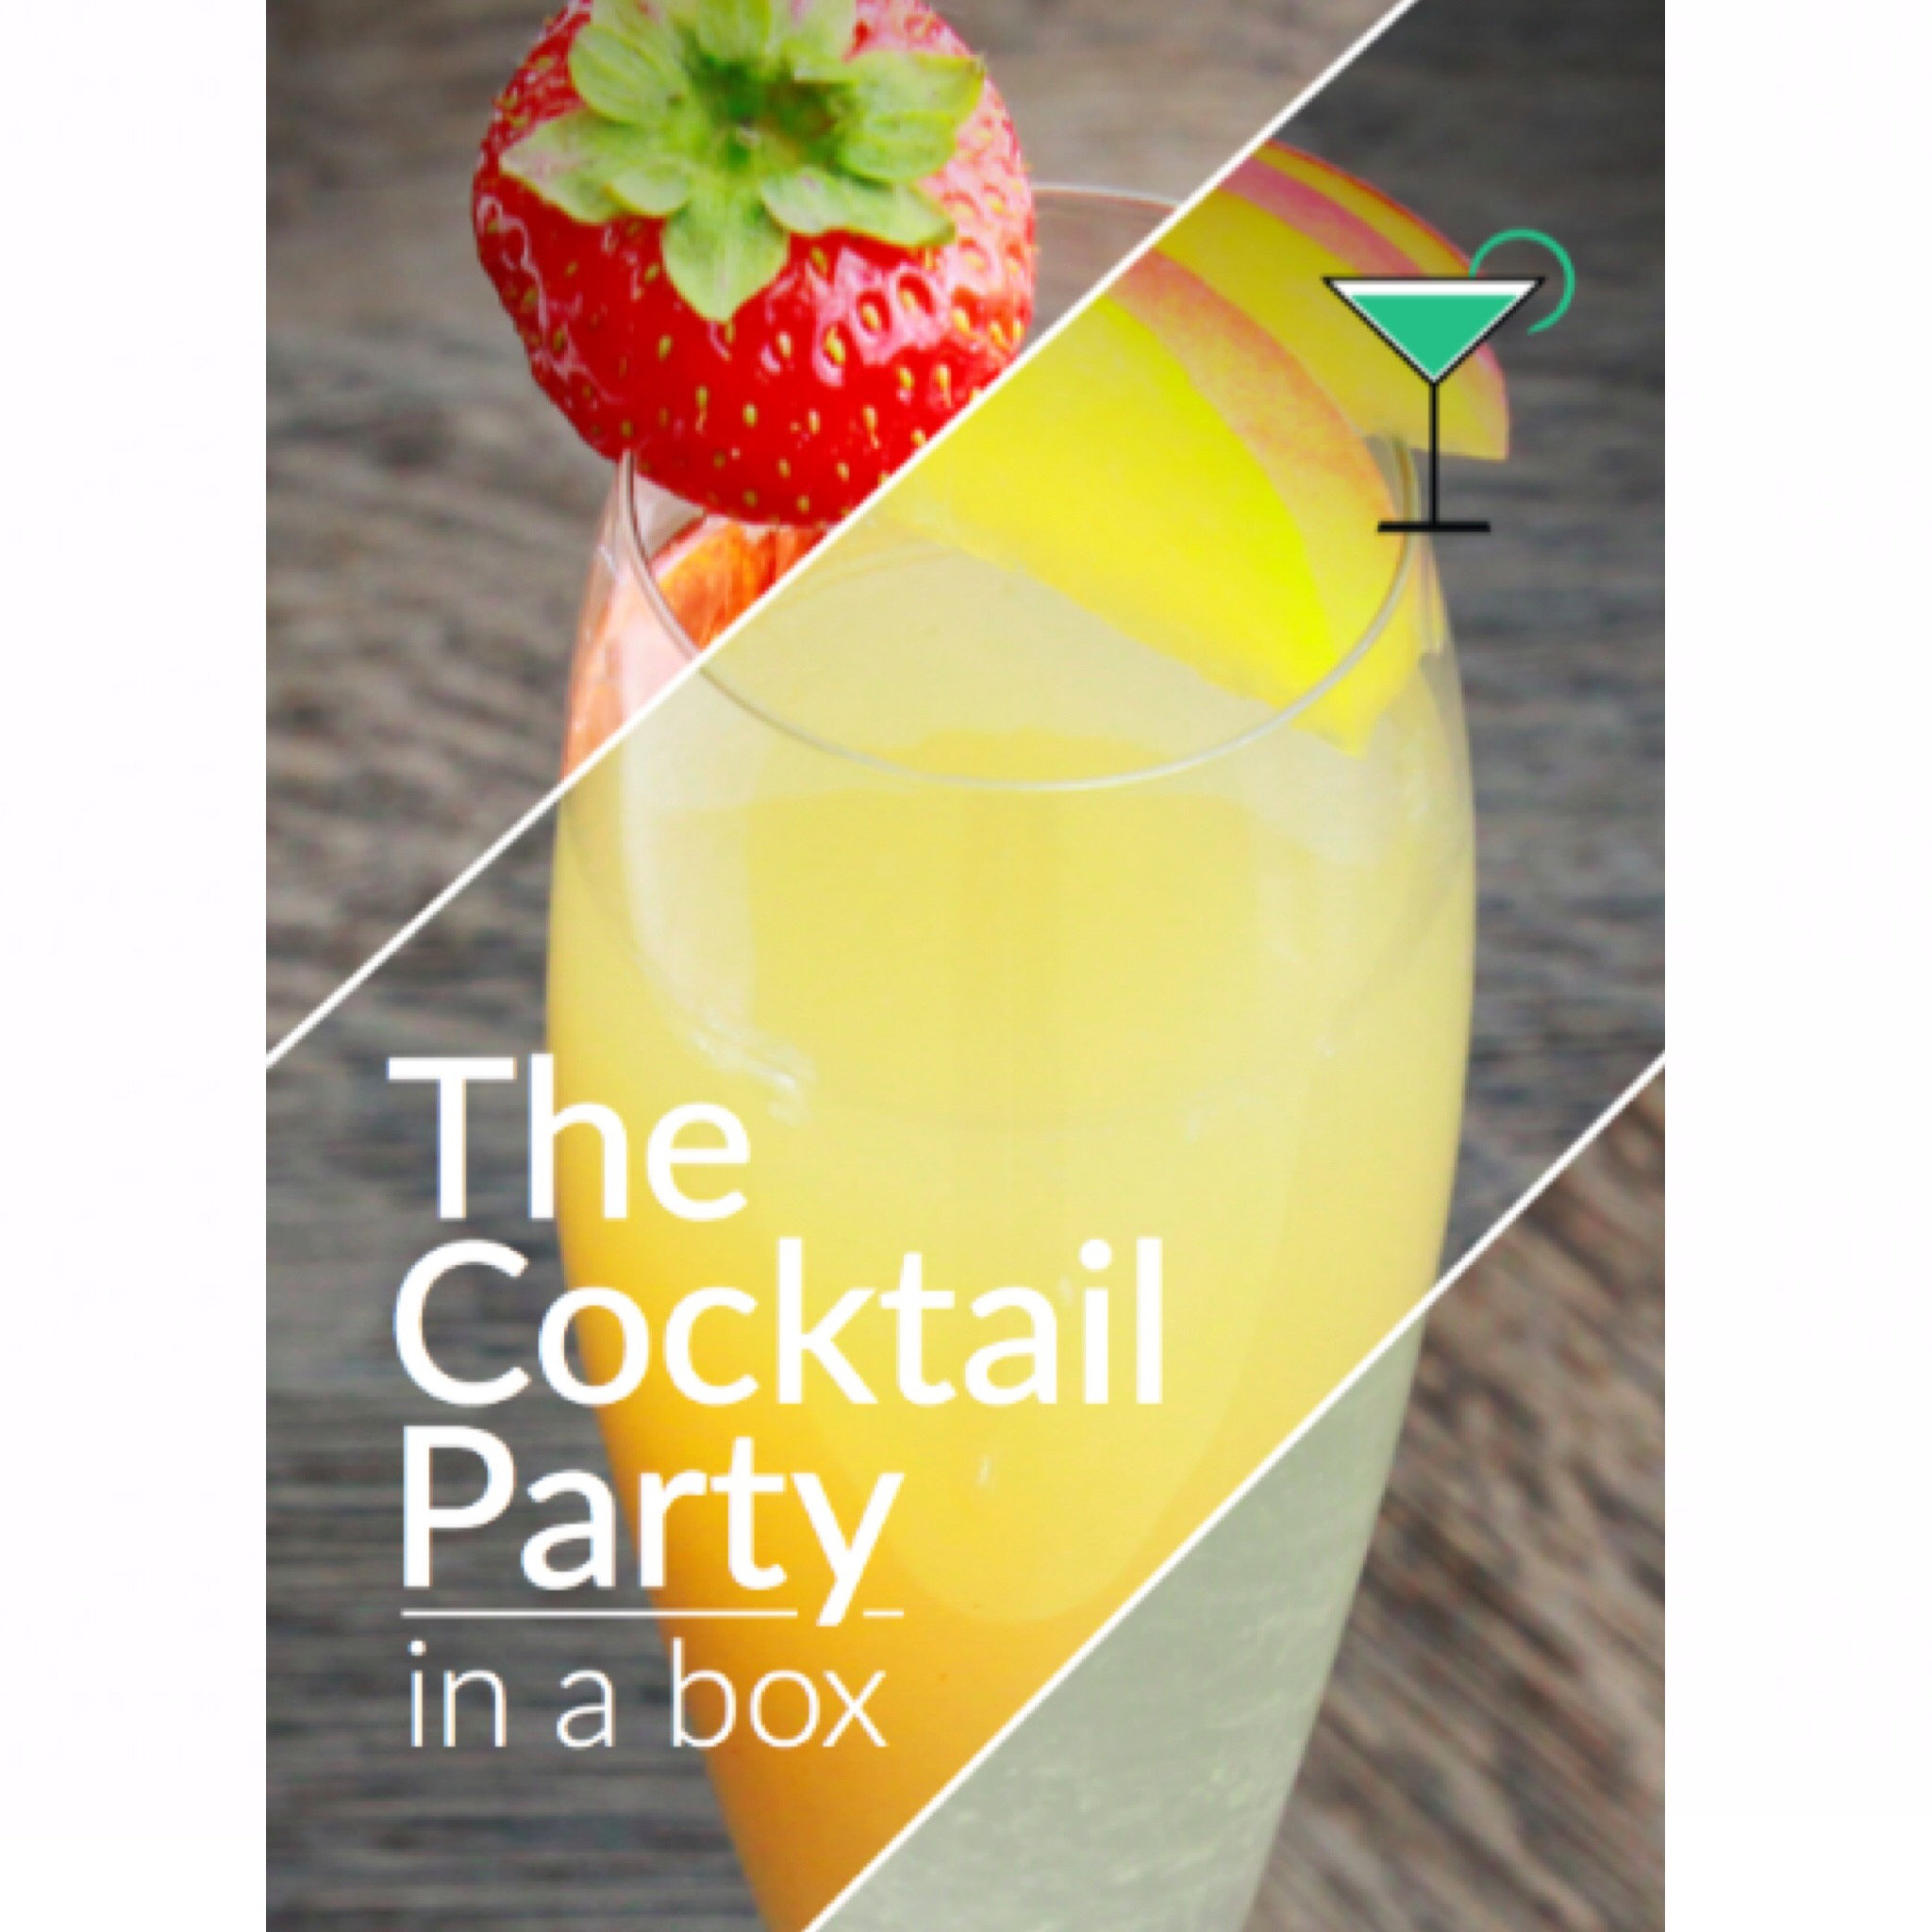 The Cocktail Party Recipe Book Thecocktailparty